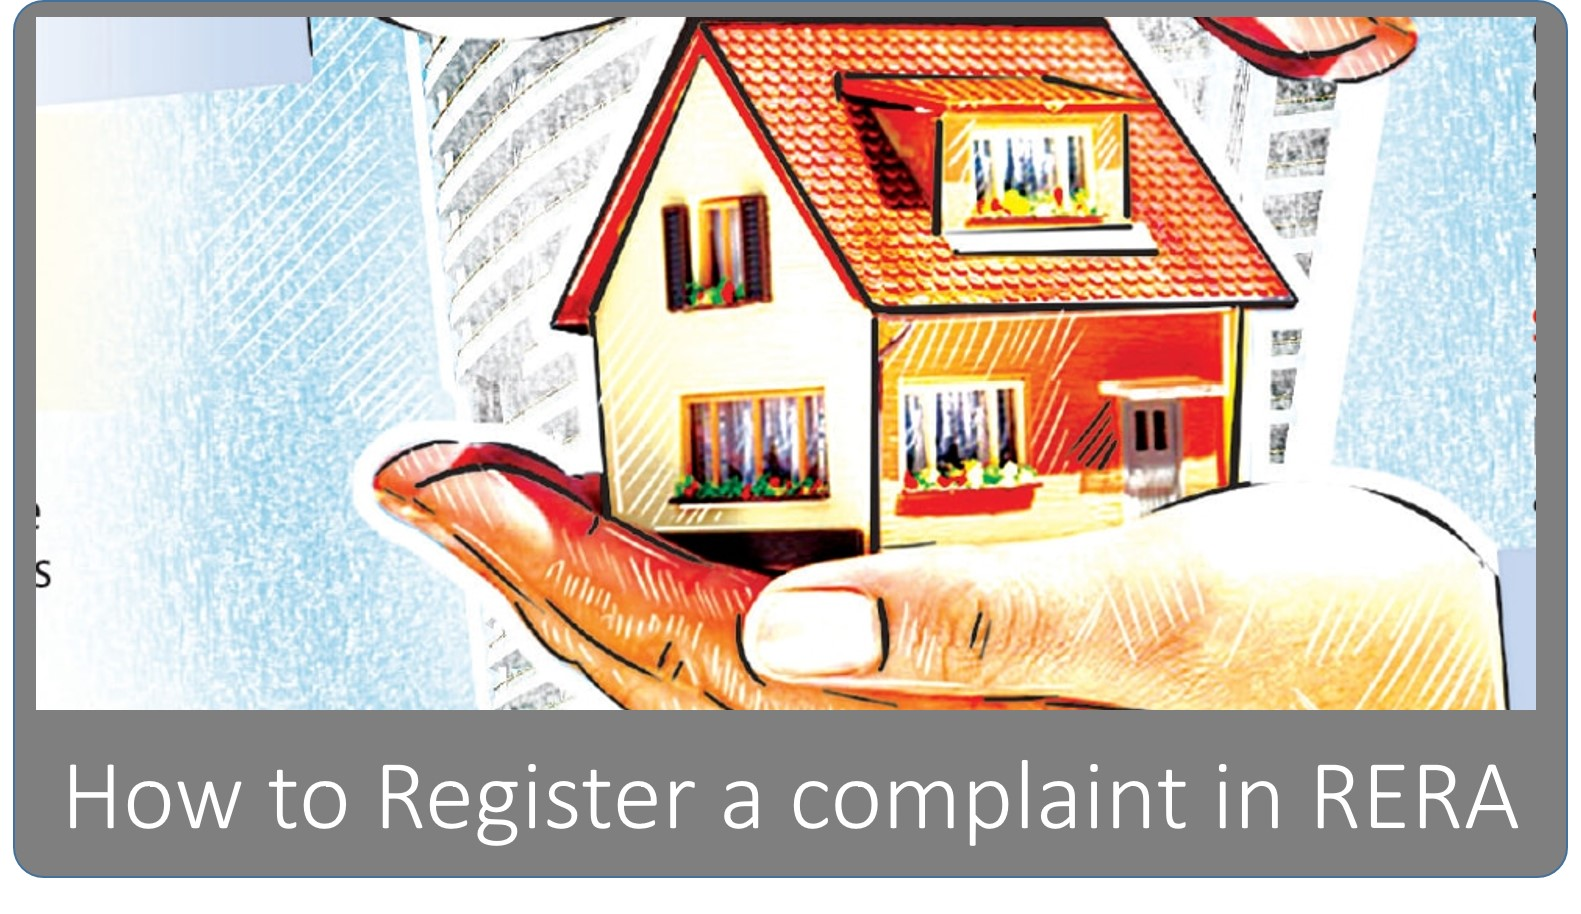 How to Register a Complaint in RERA